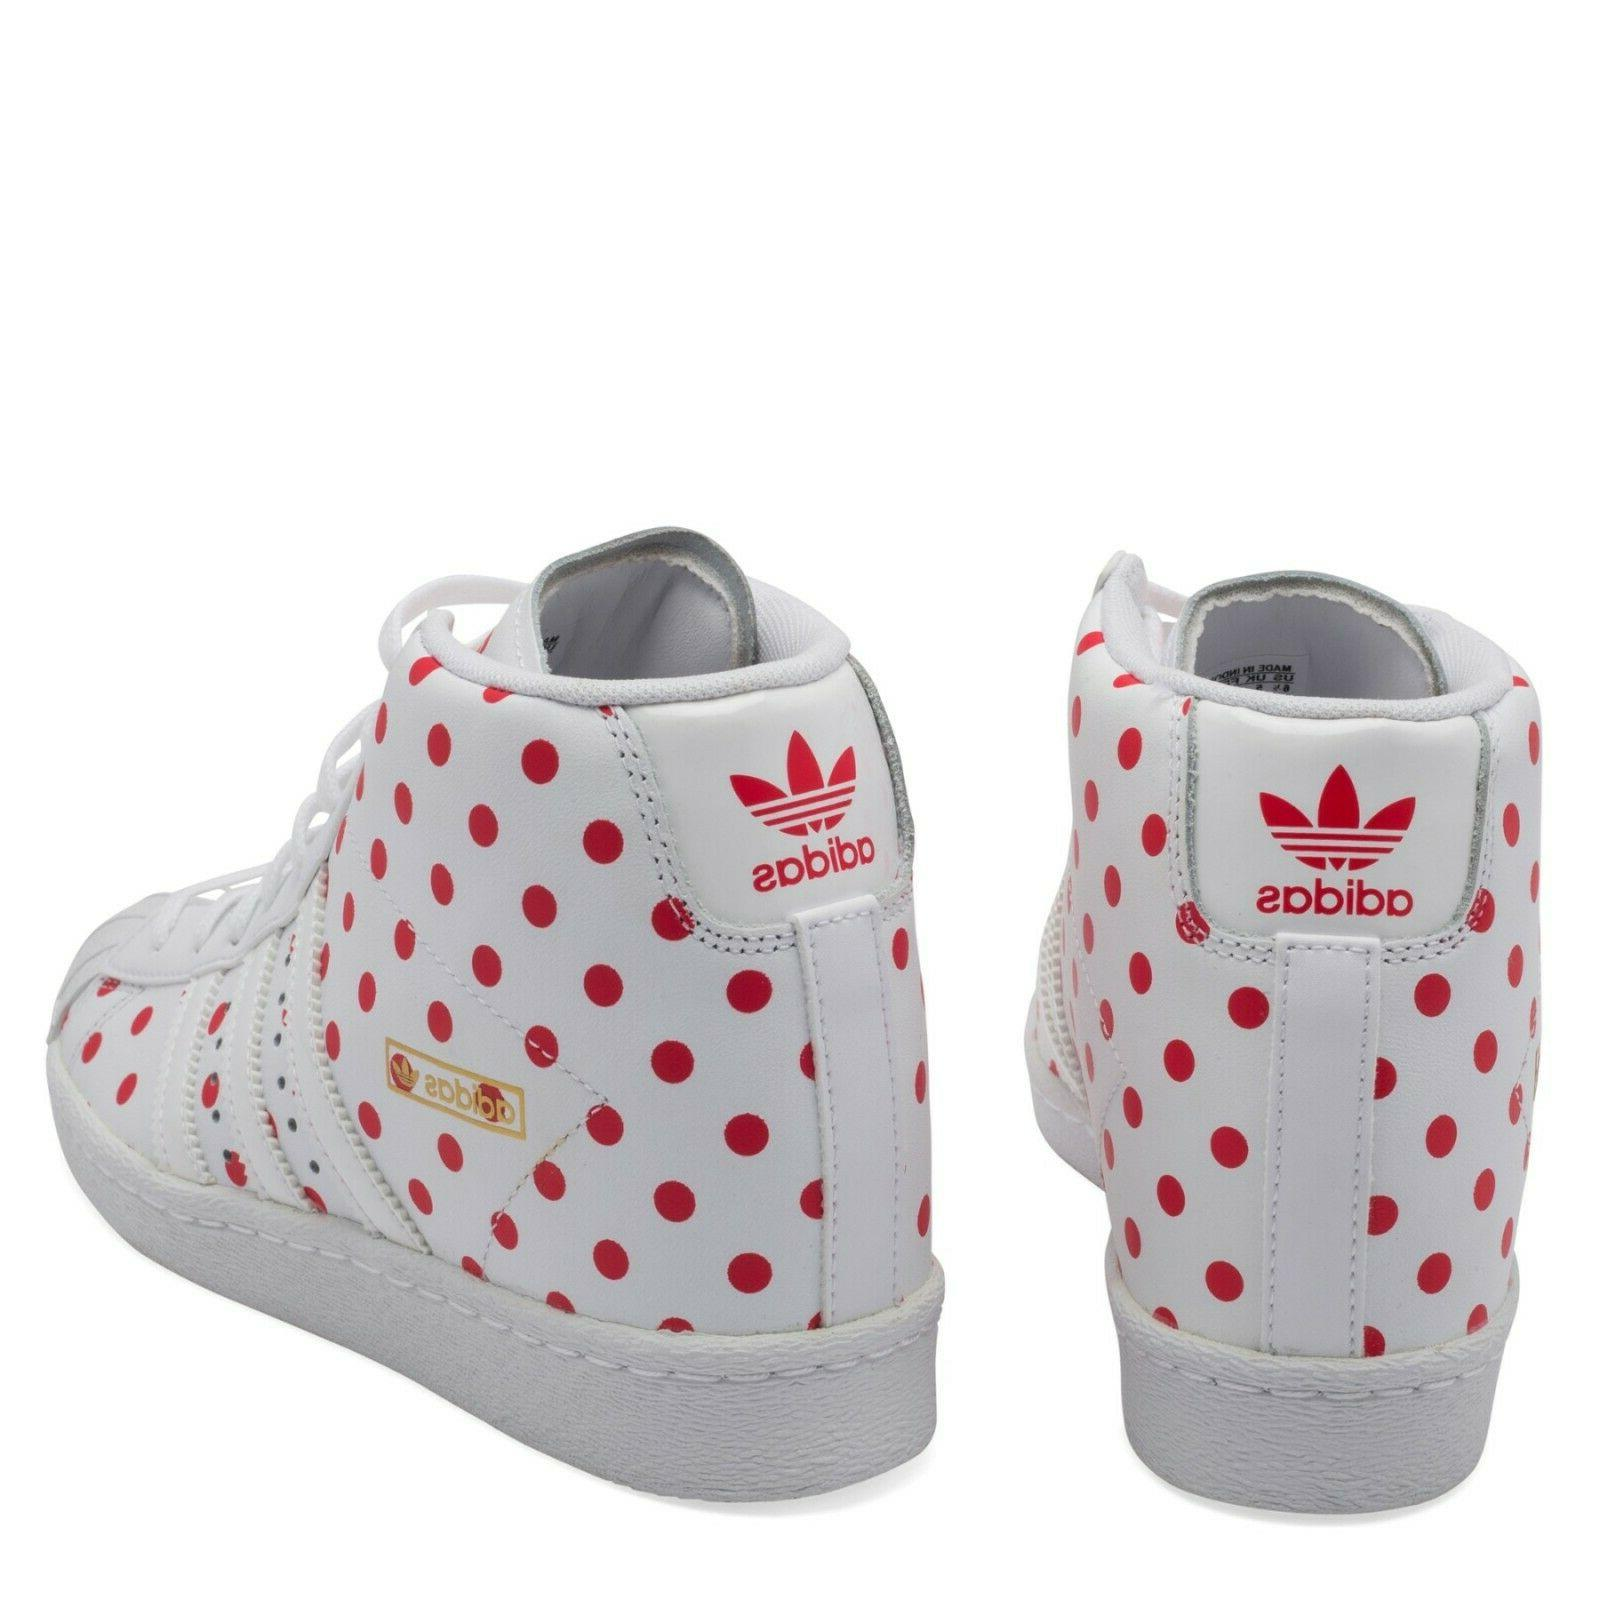 Adidas Superstar High Red & White Sneaker Shoes Size 6